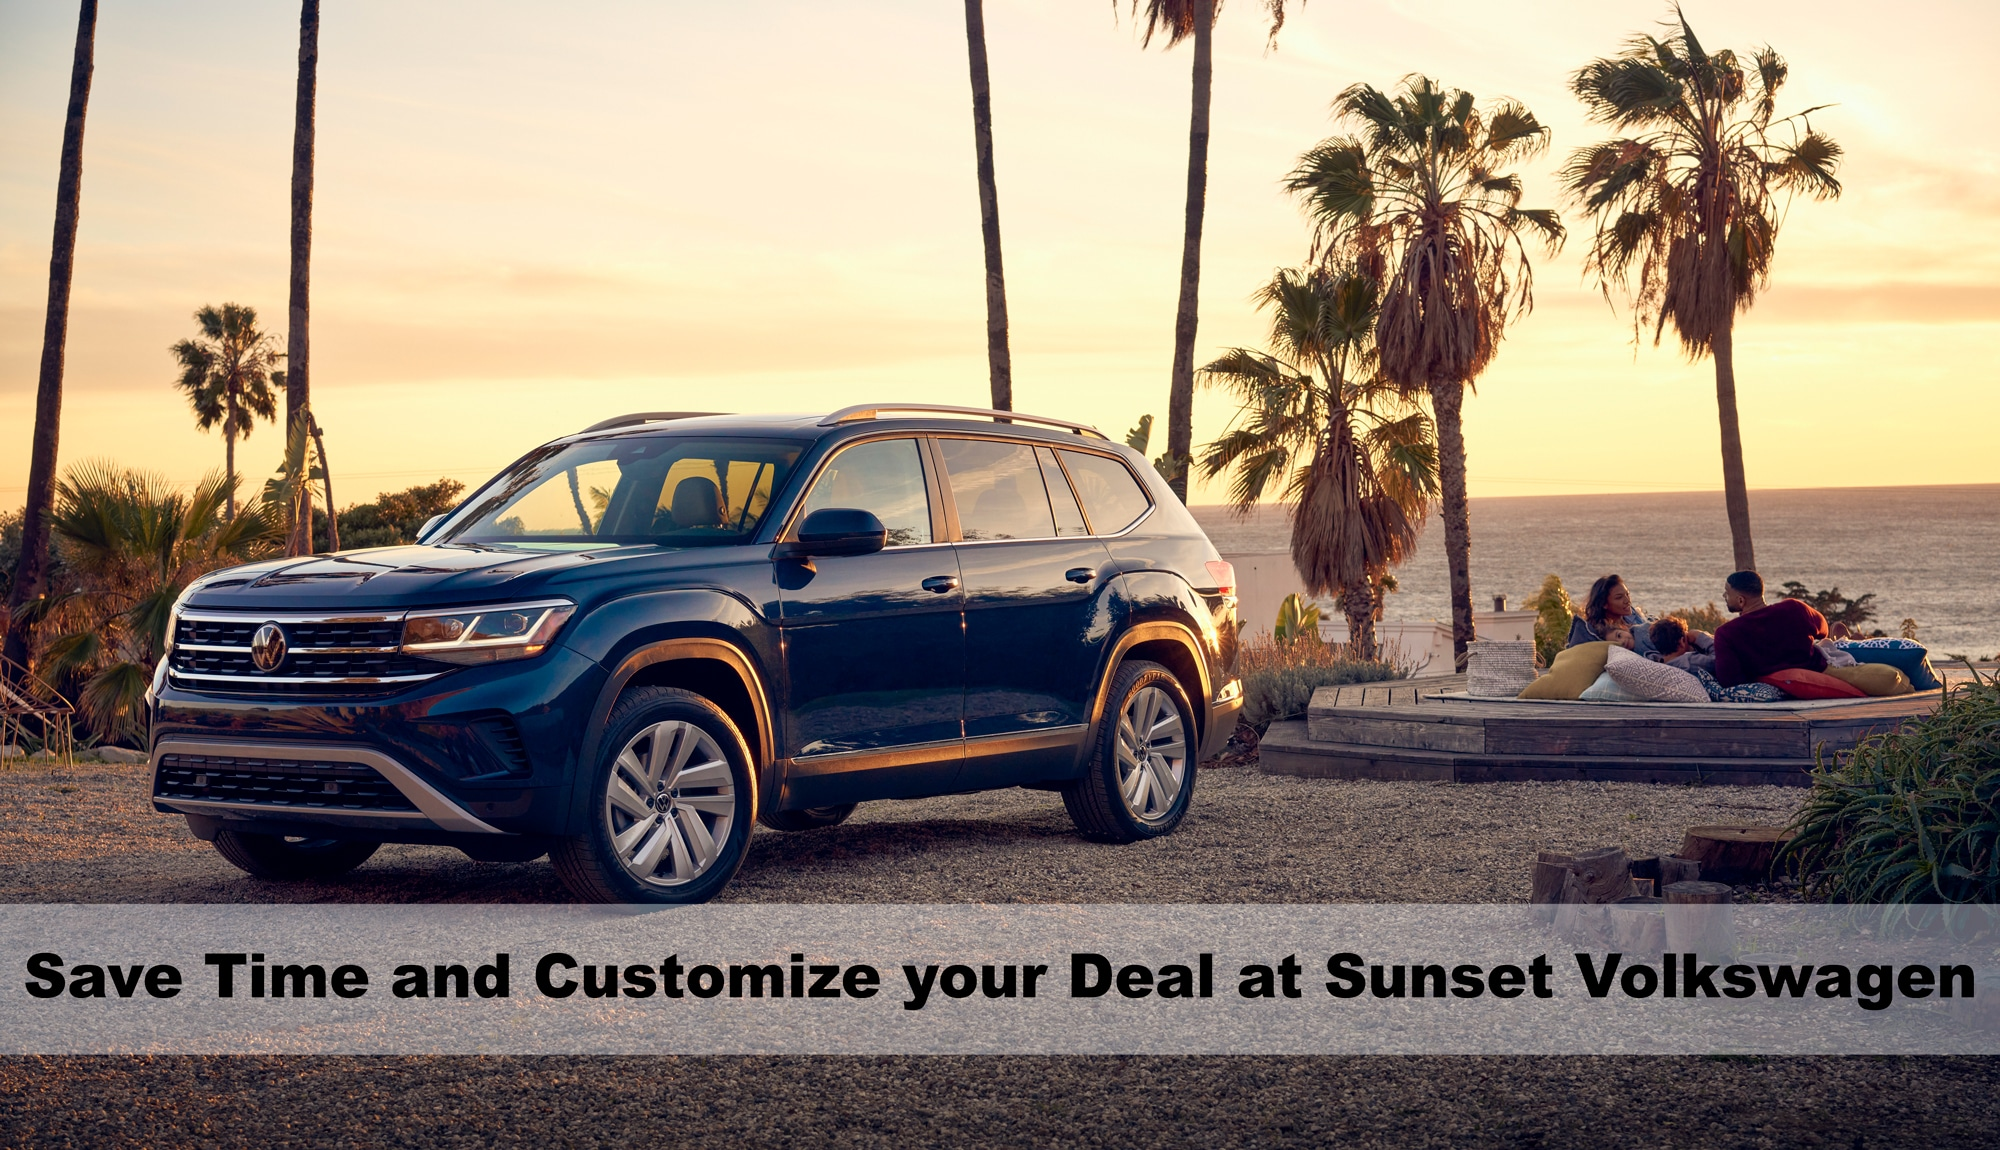 Save time and customize your deal at Sunset VW